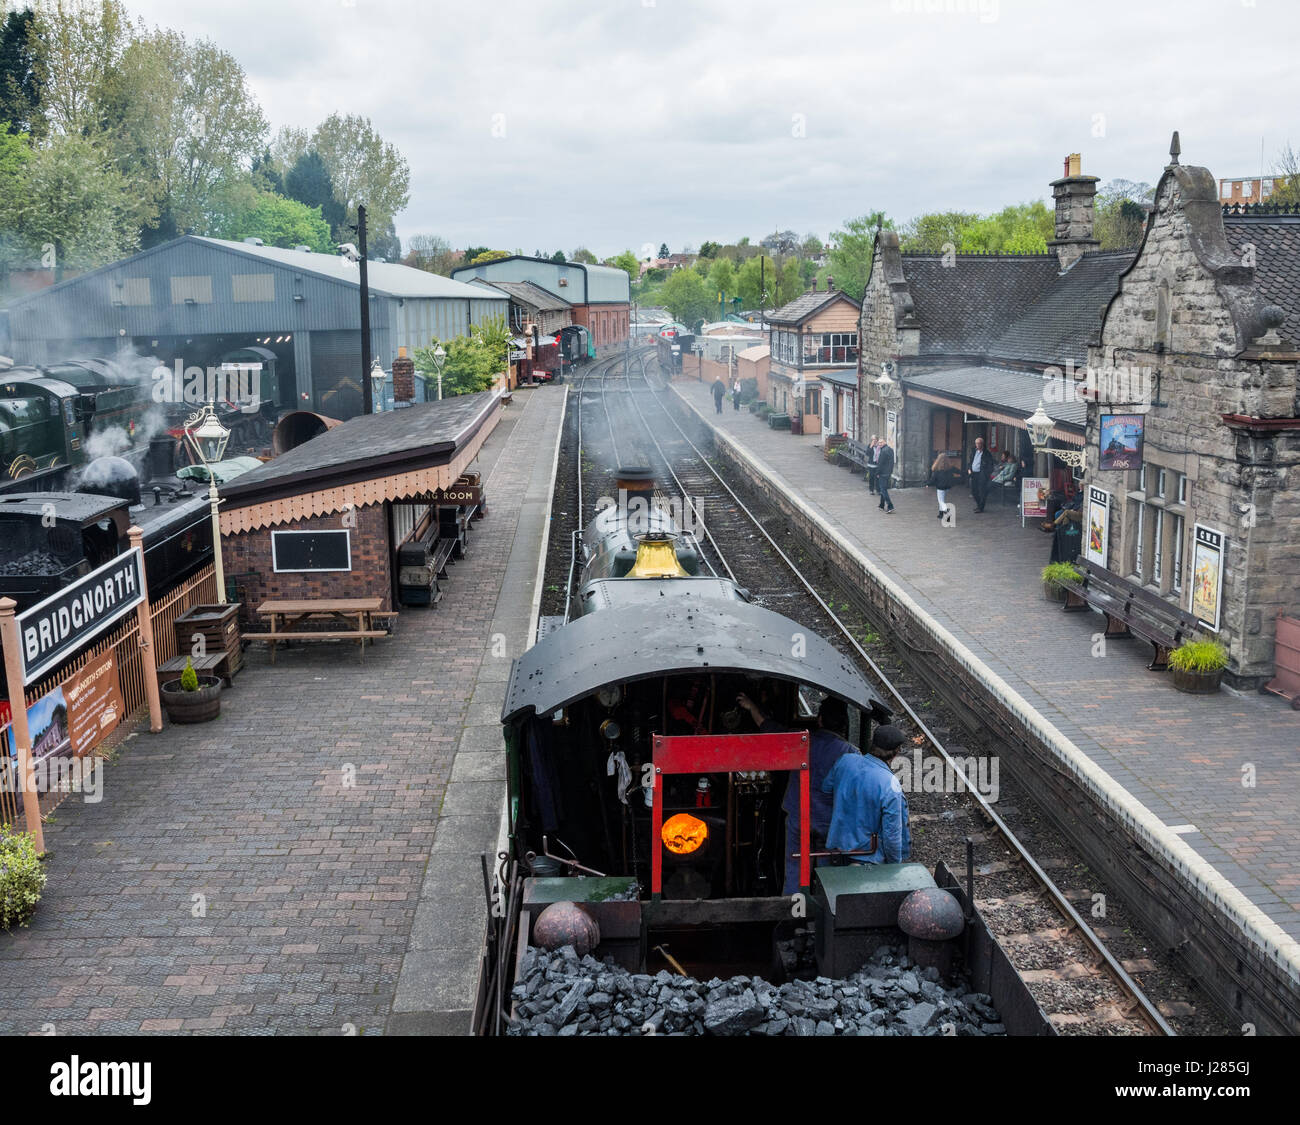 The Royal Scot steam train coming into Bridgnorth railway station, Shropshire, West Midlands, UK. Severn Valley - Stock Image